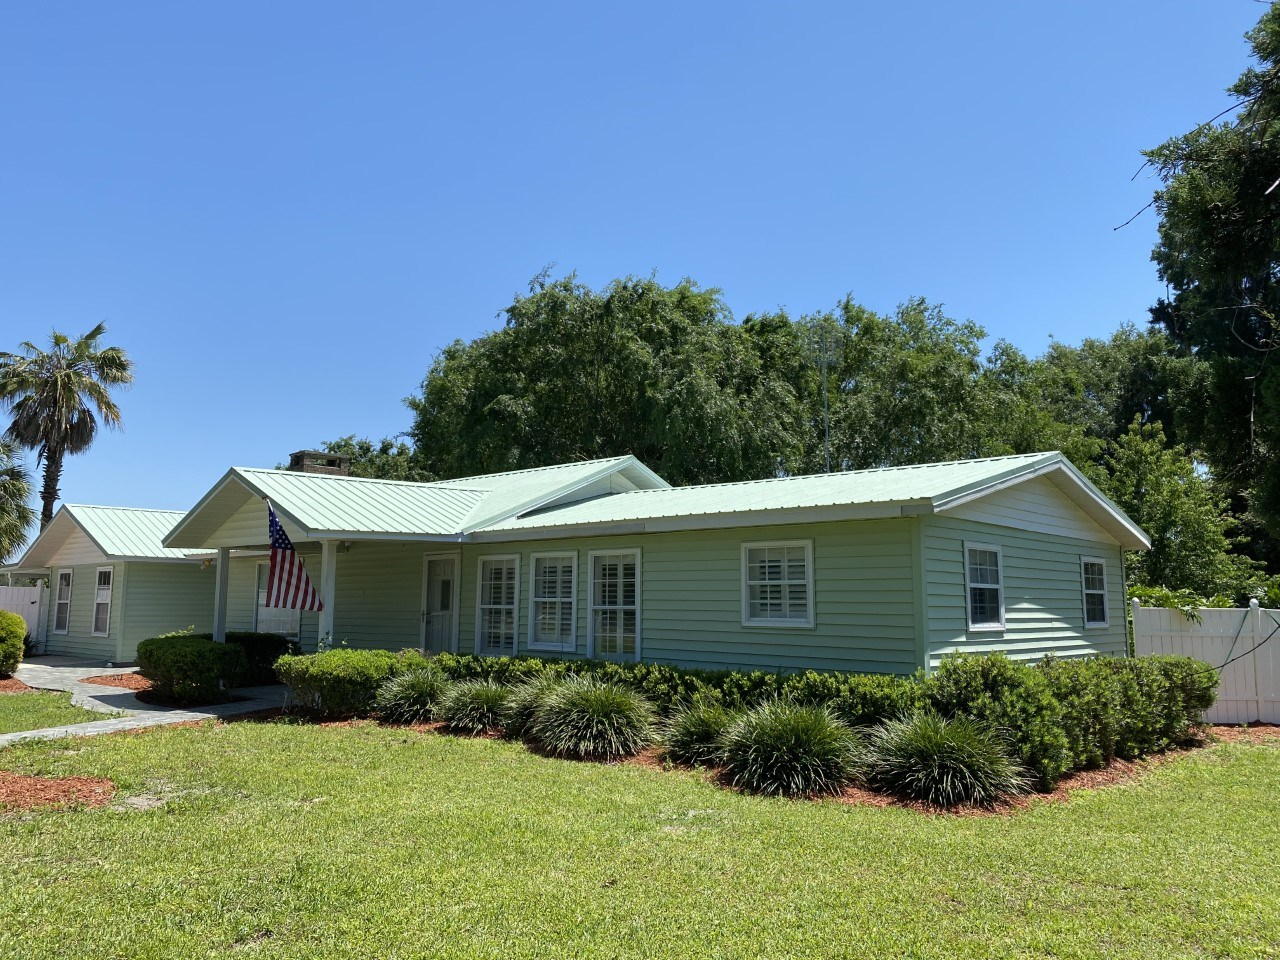 FOR SALE IN BELL, FL - 2/1 WELL-MAINTAINED HOME WITH A POOL